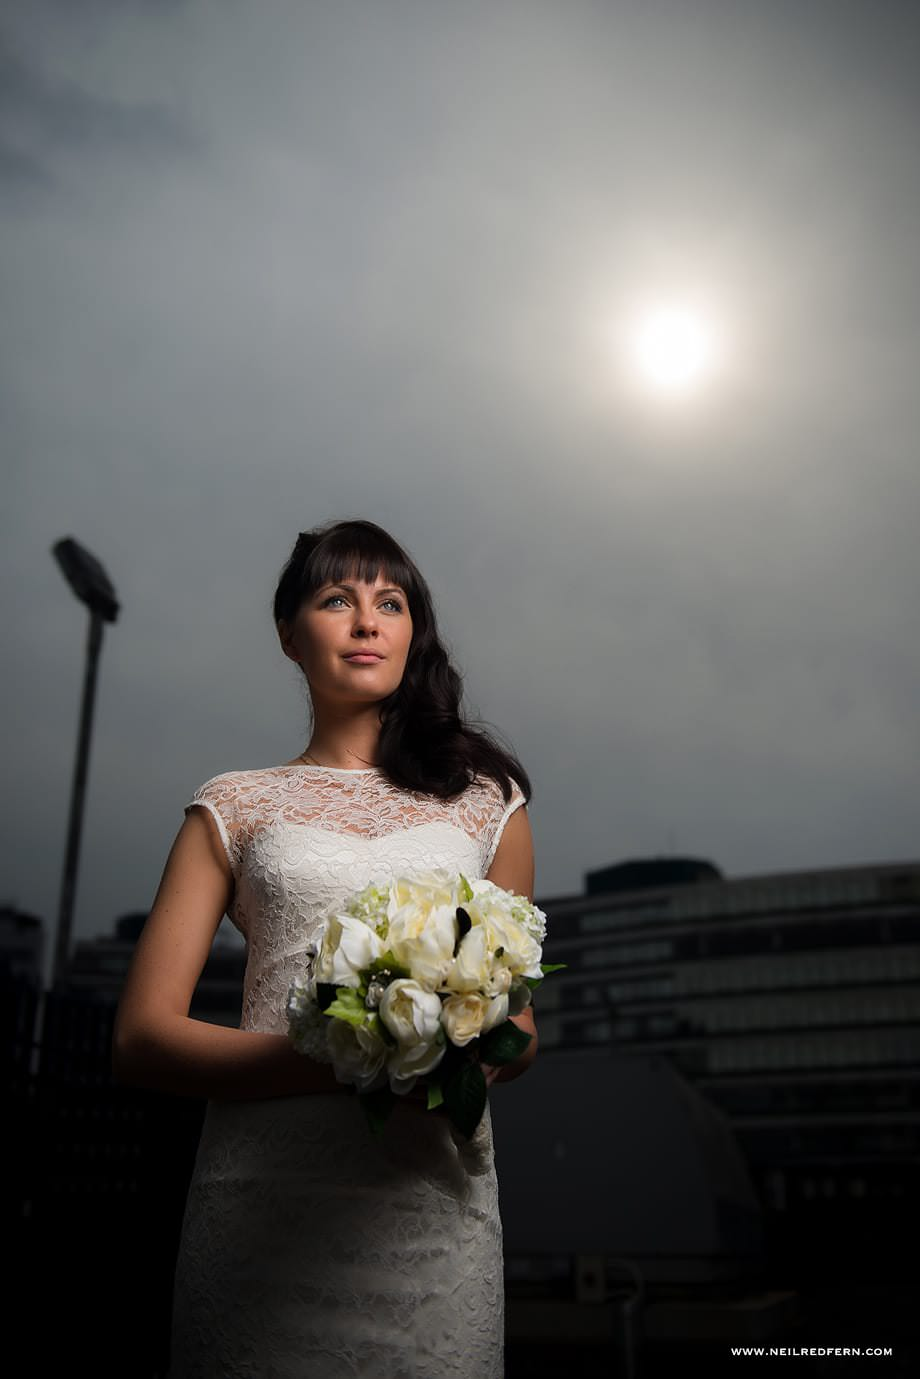 Wedding Photography Workshop in Manchester – April 2013